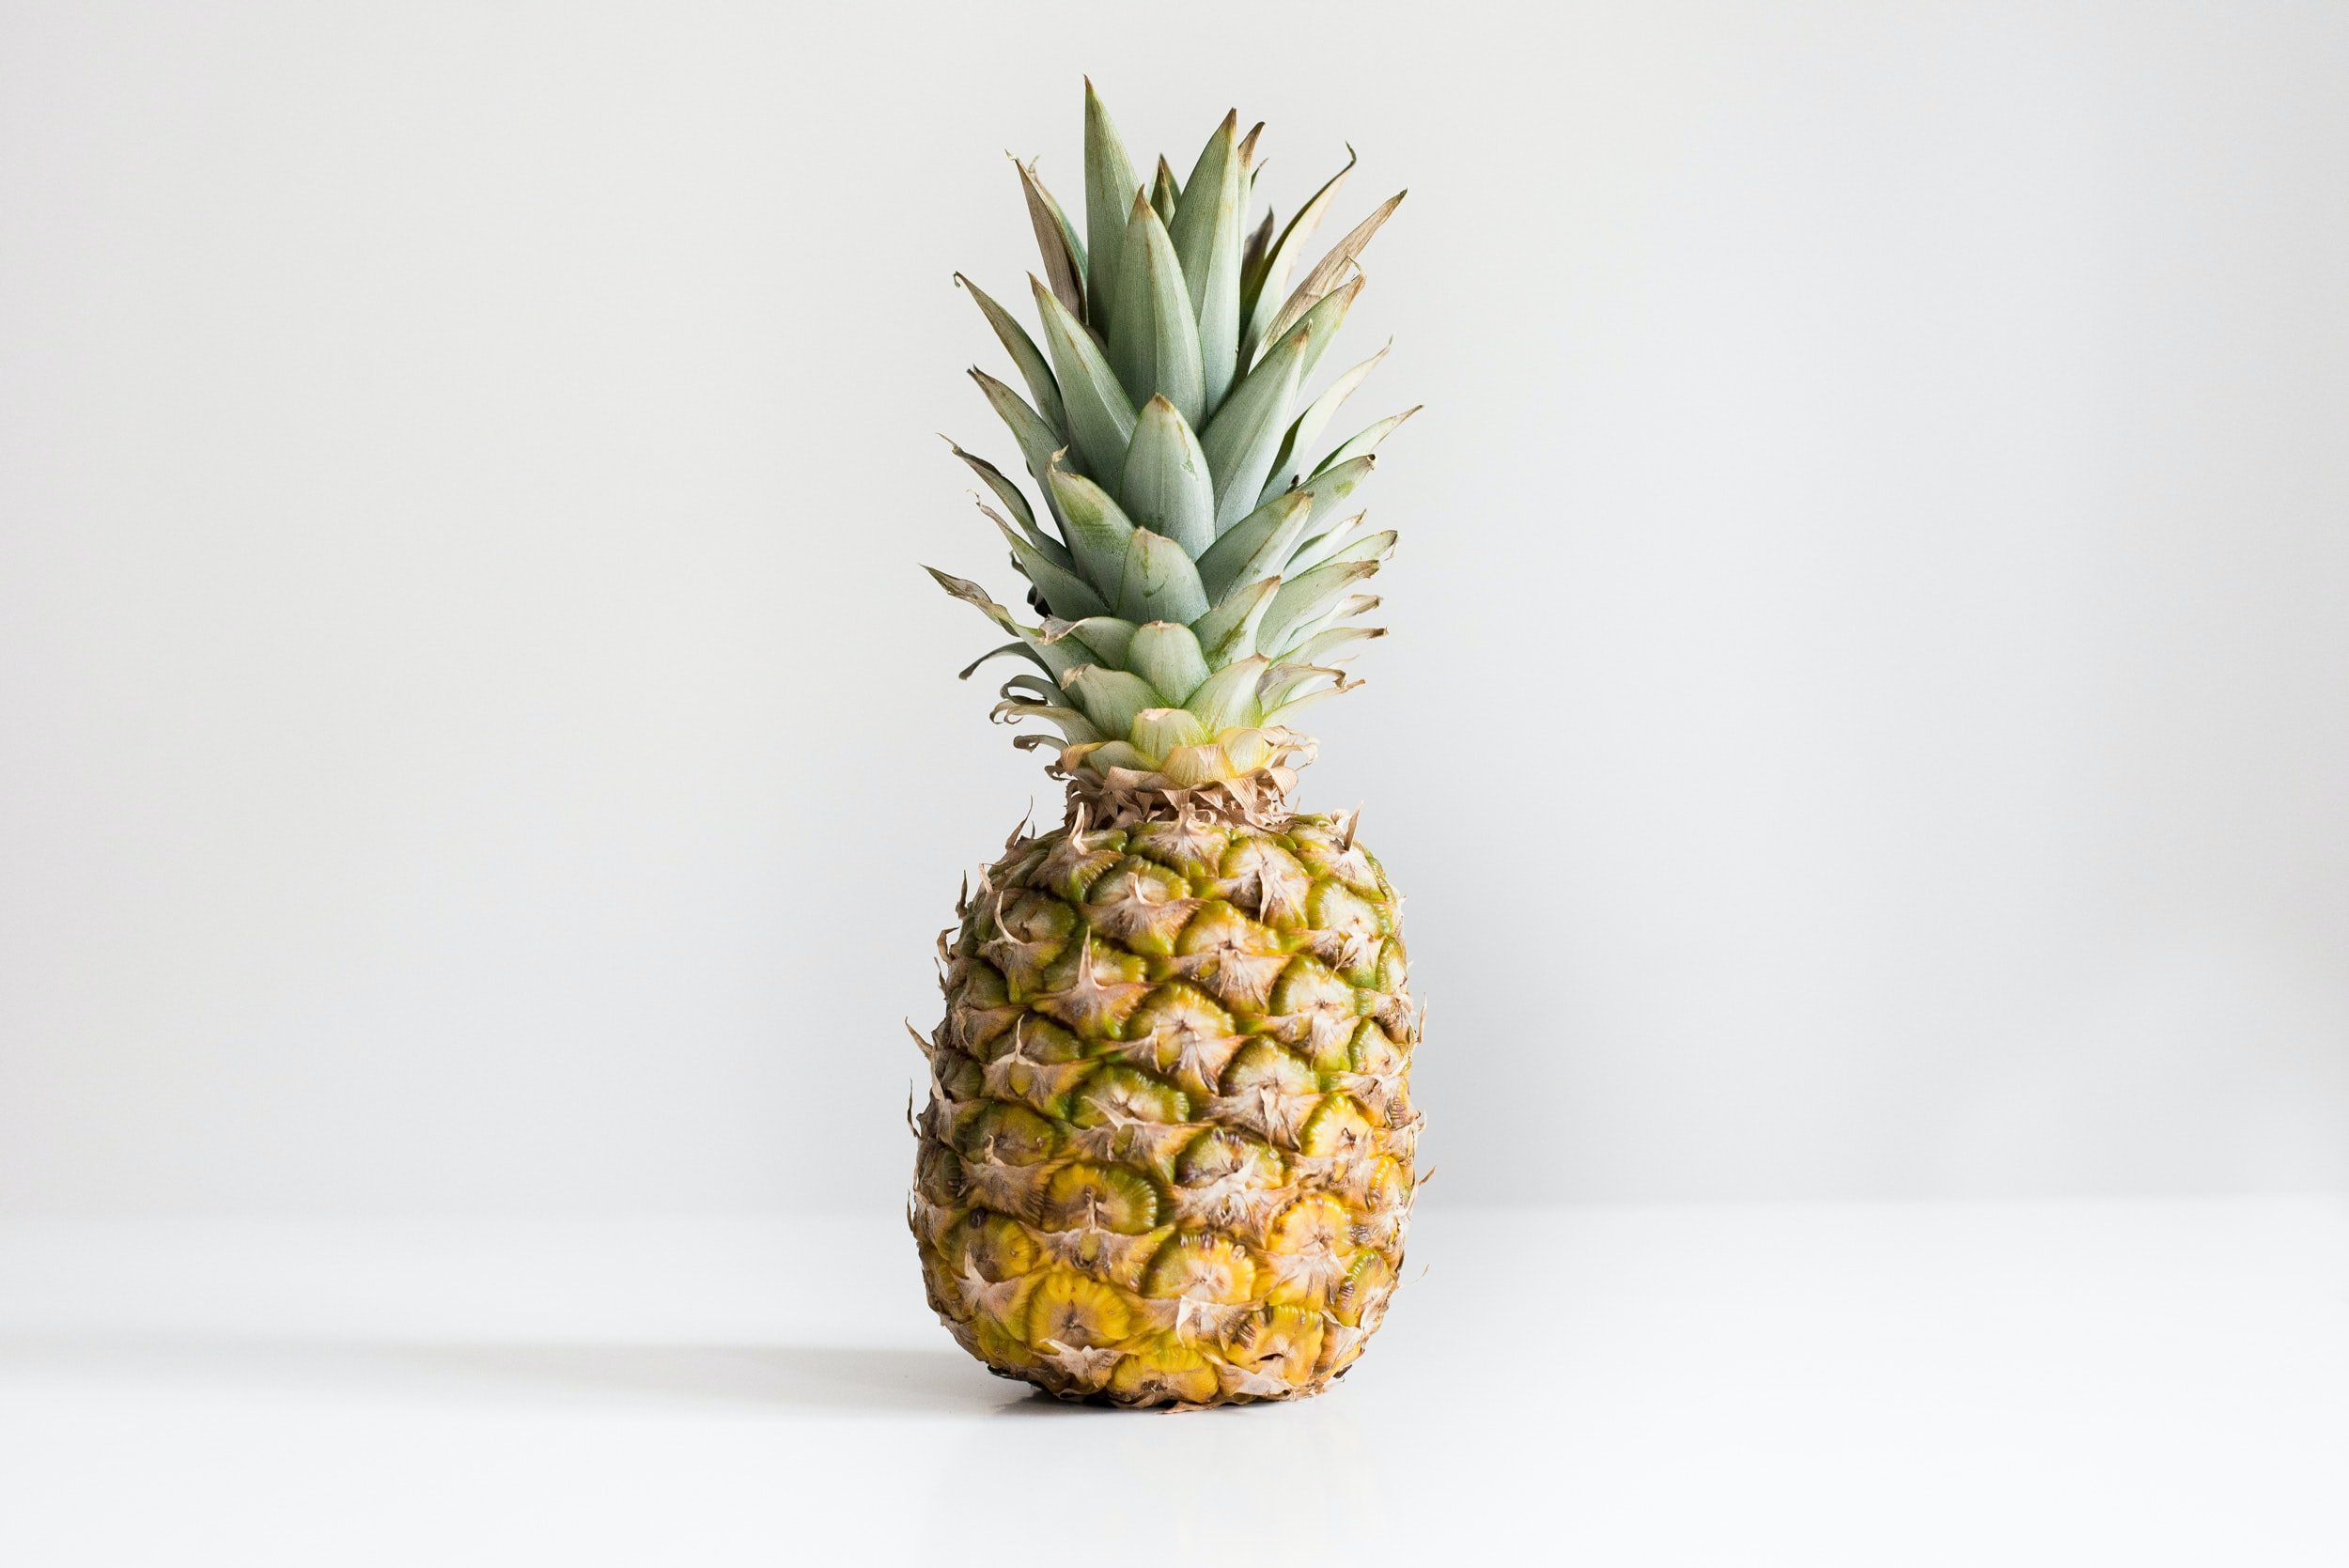 One pineapple with green top on a white background